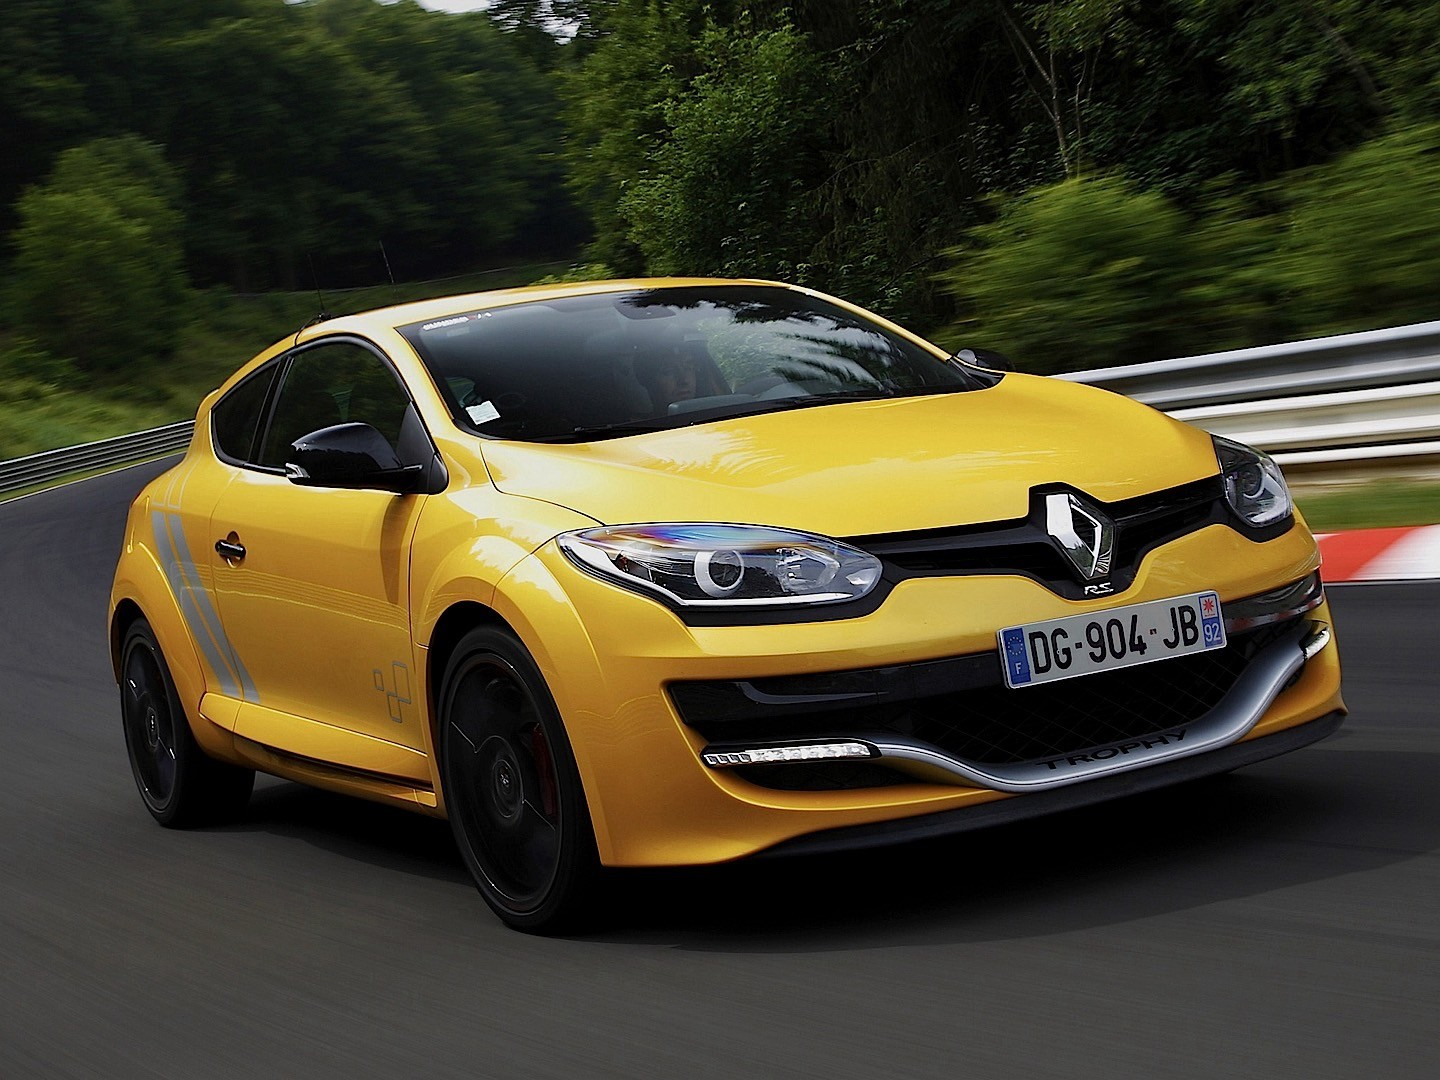 renault megane rs coupe specs photos 2014 2015 2016. Black Bedroom Furniture Sets. Home Design Ideas